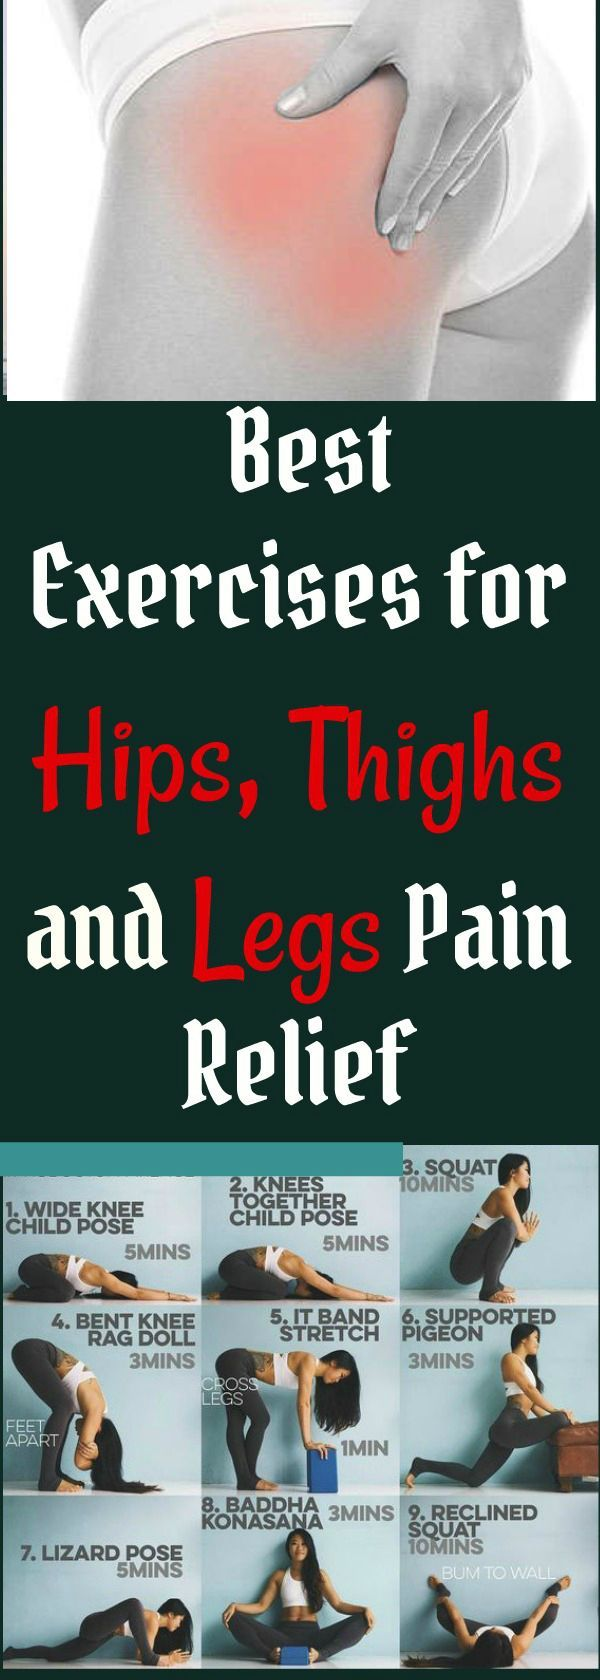 Best exercises for lower body pain. Get relief from legs,hips, and thigh pain fast at home